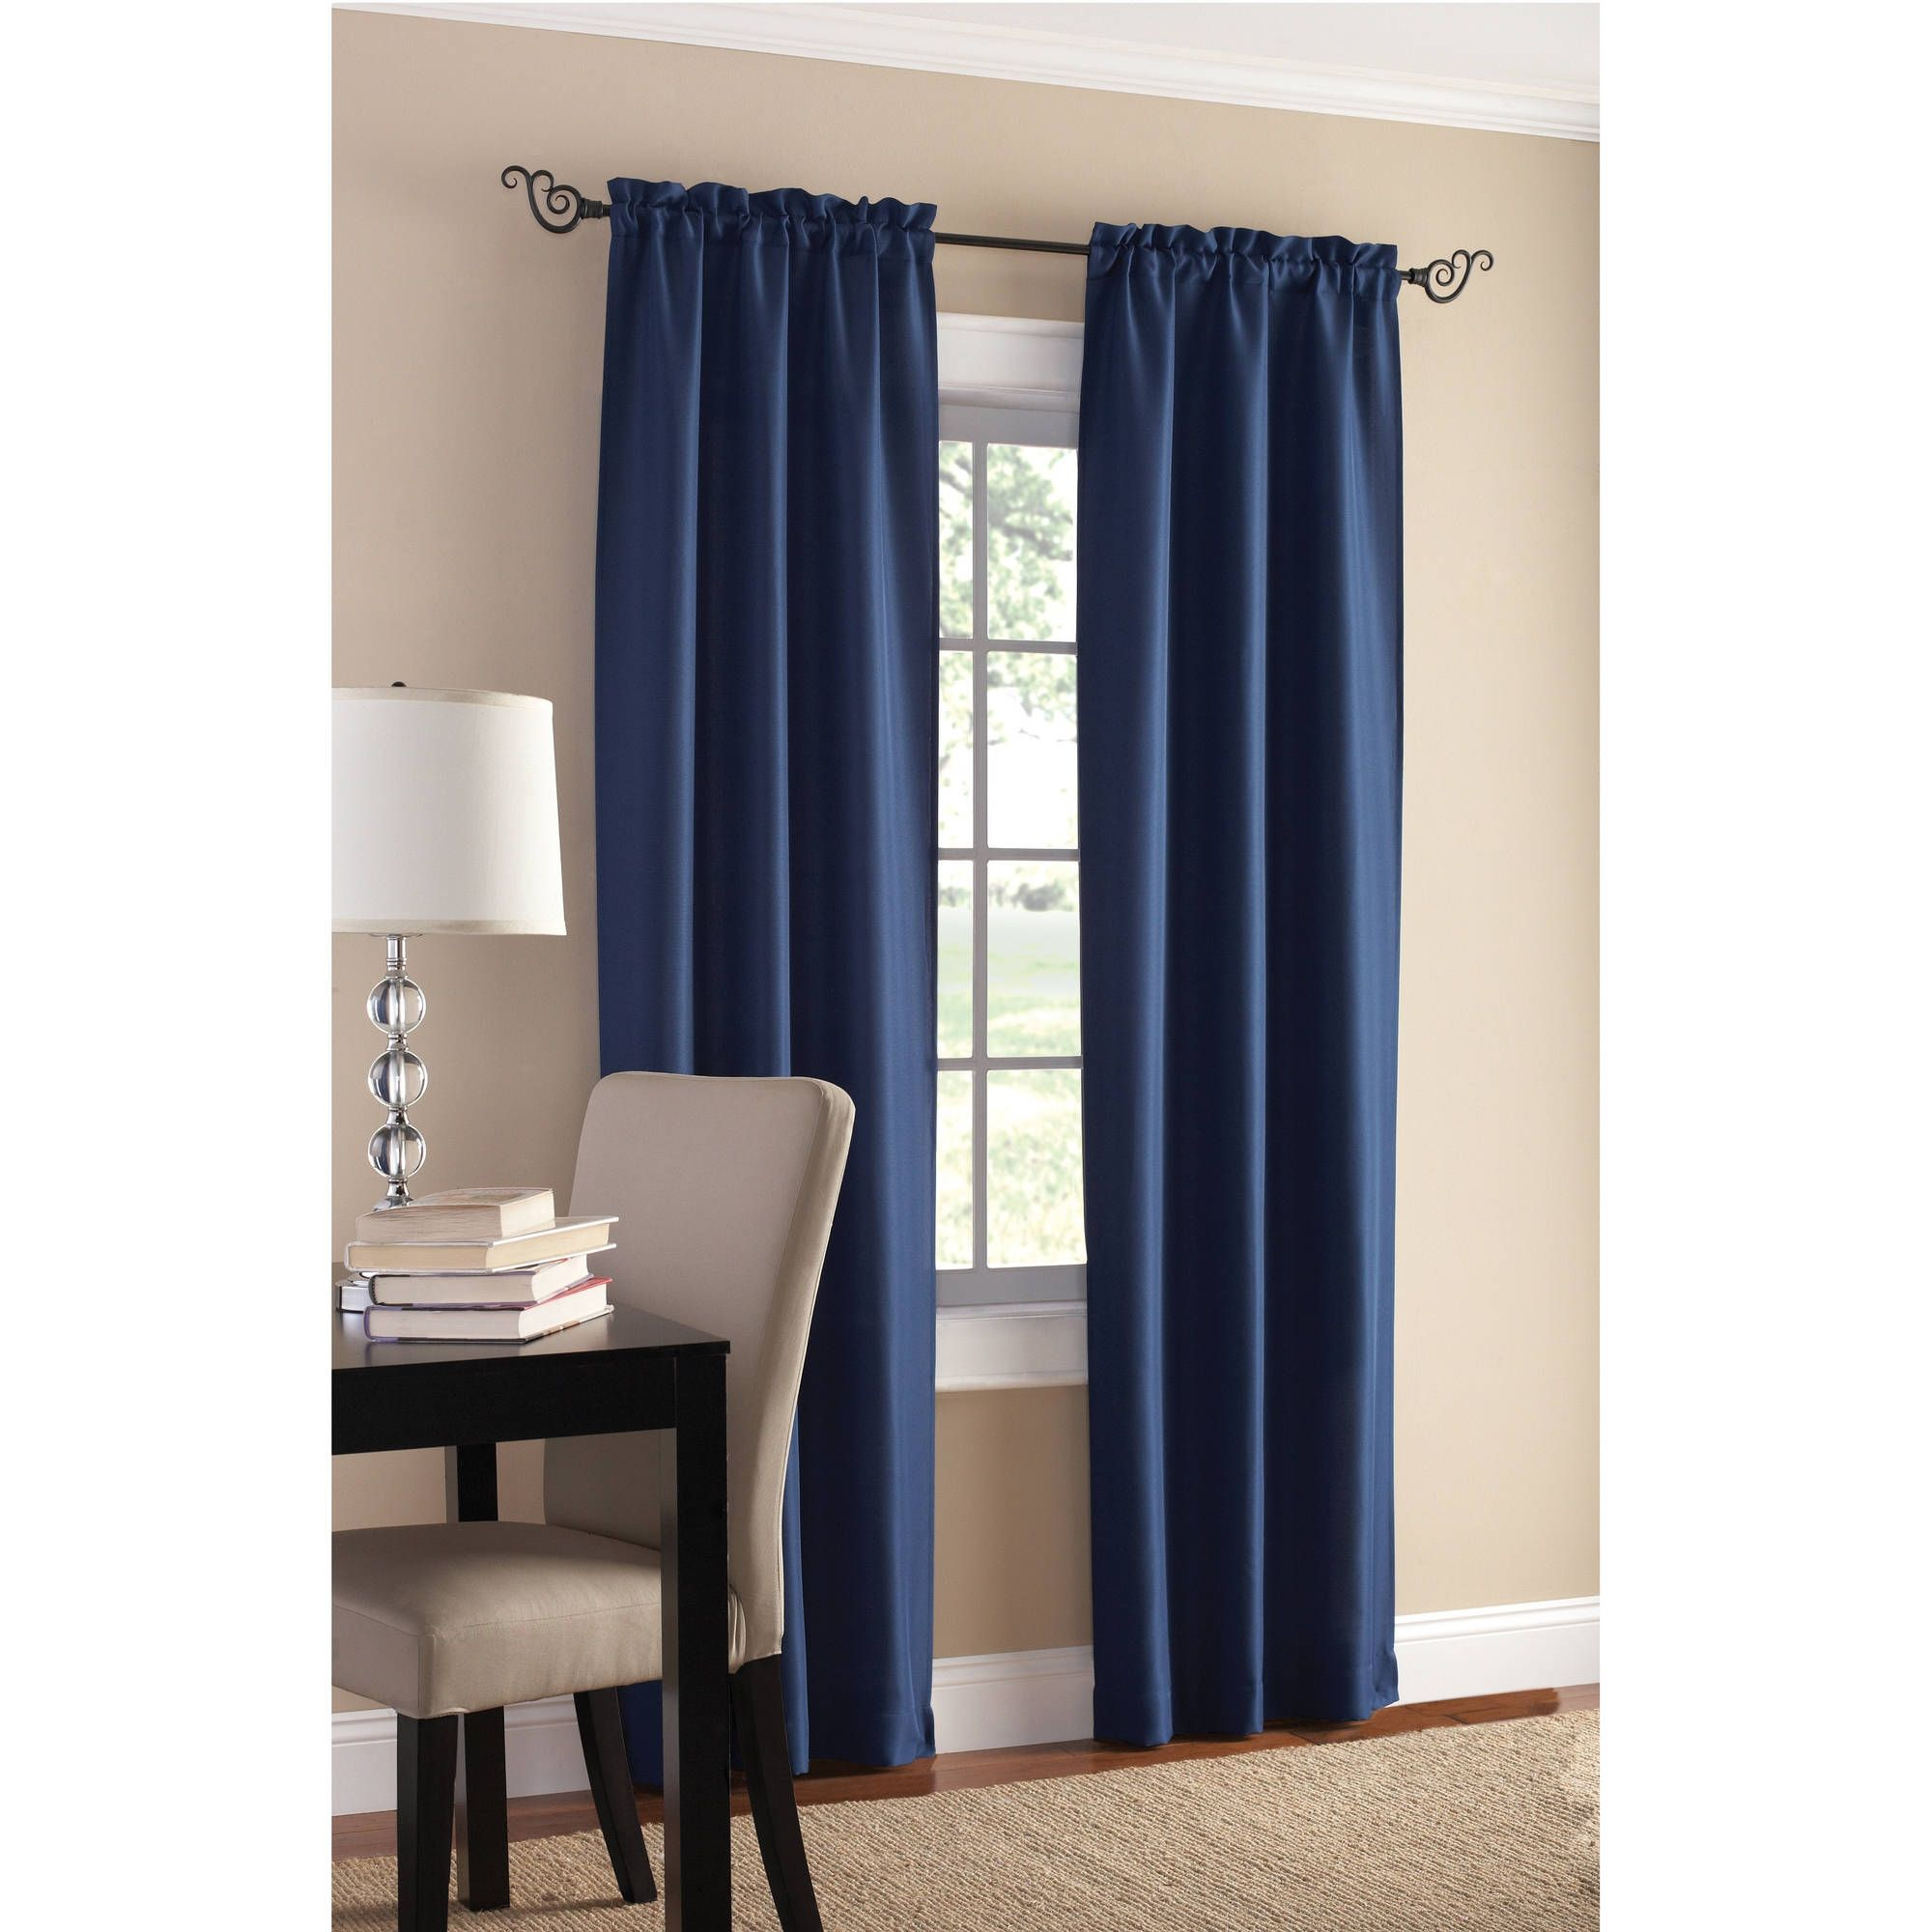 Royal blue kitchen curtains latulufofeed pinterest